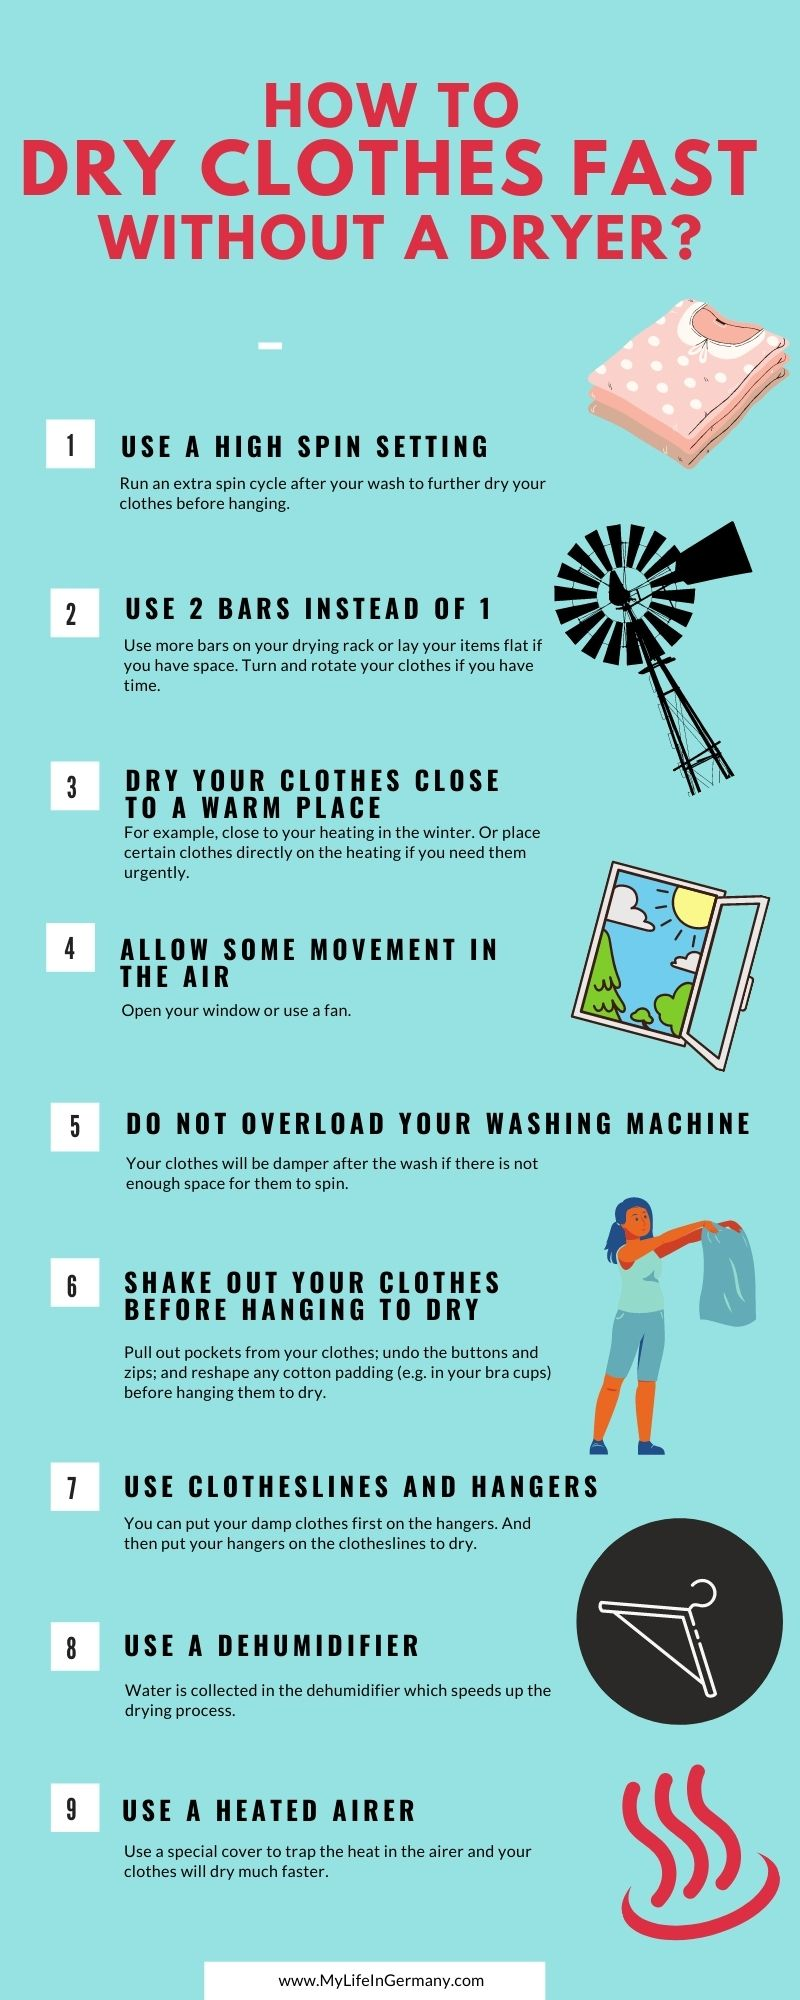 pinterest edited 2_laundry in germany_how to dry clothes fast_my life in germany_hkwomanabroad